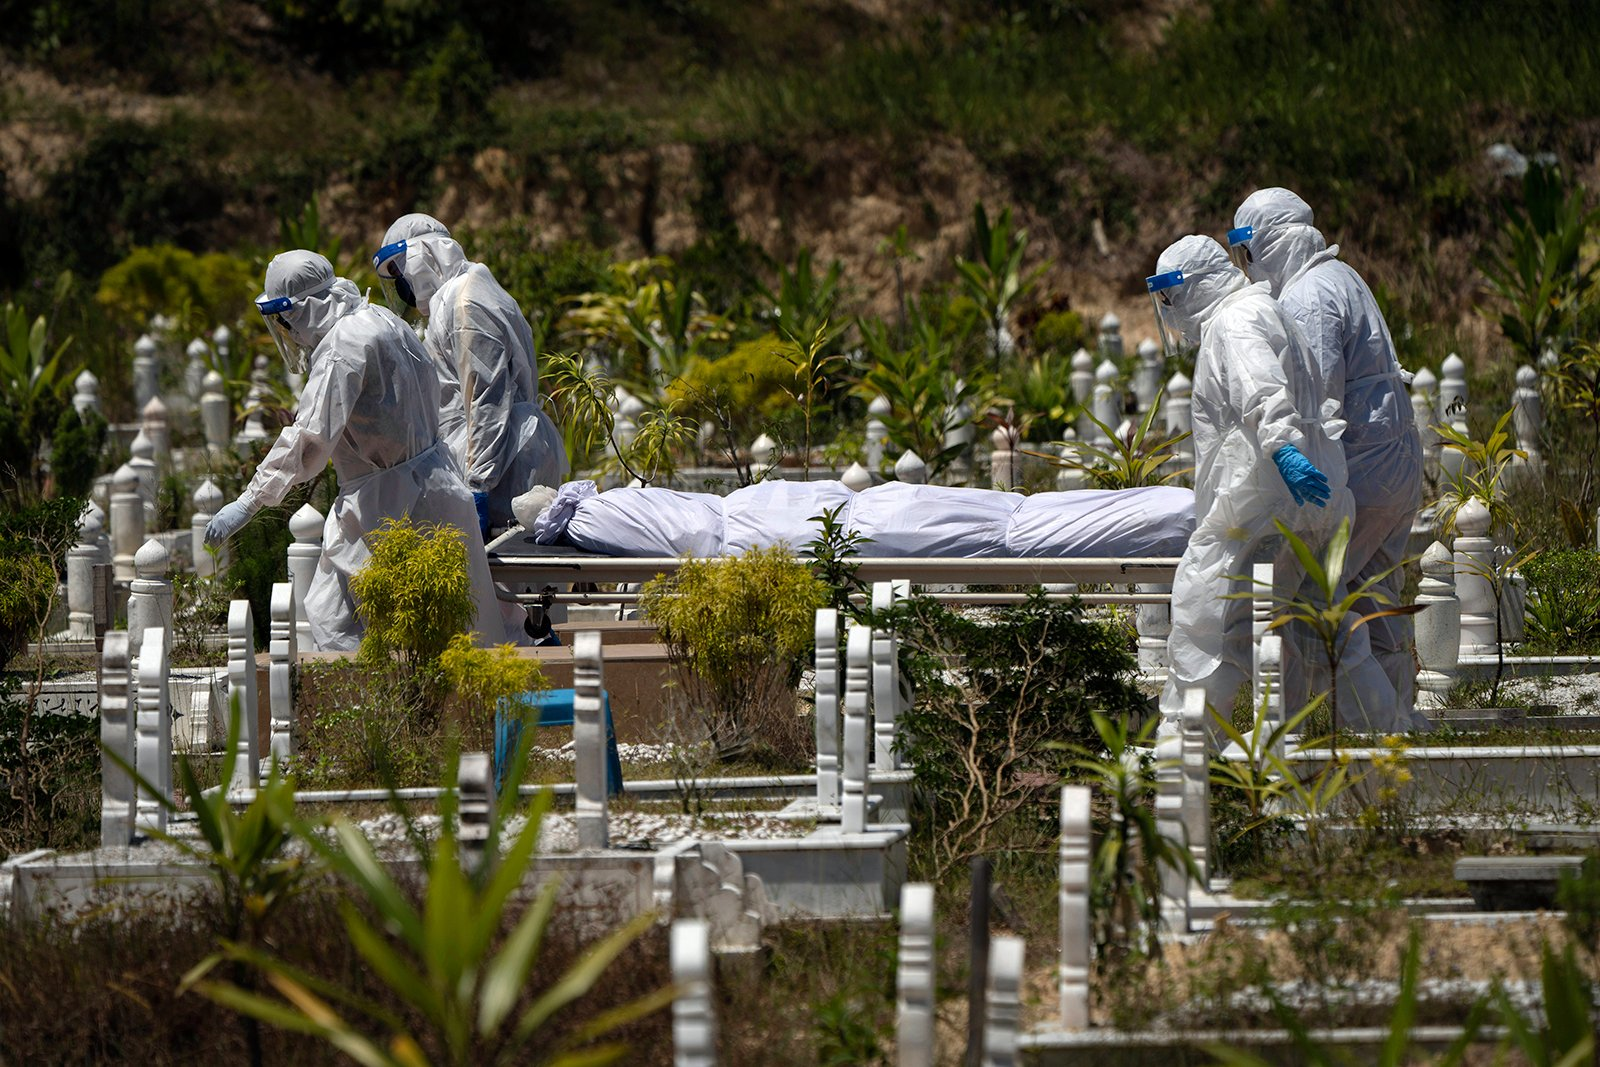 Workers wearing personal protective equipment (PPE) carry the body of a victim of the coronavirus disease at a Muslim cemetery in Gombak, outskirts of Kuala Lumpur, Malaysia, Friday, Feb. 5, 2021. The movement control order (MCO) currently enforced across the country, has been extended to Feb. 18, to try to halt the spread of the coronavirus. (AP Photo/Vincent Thian)